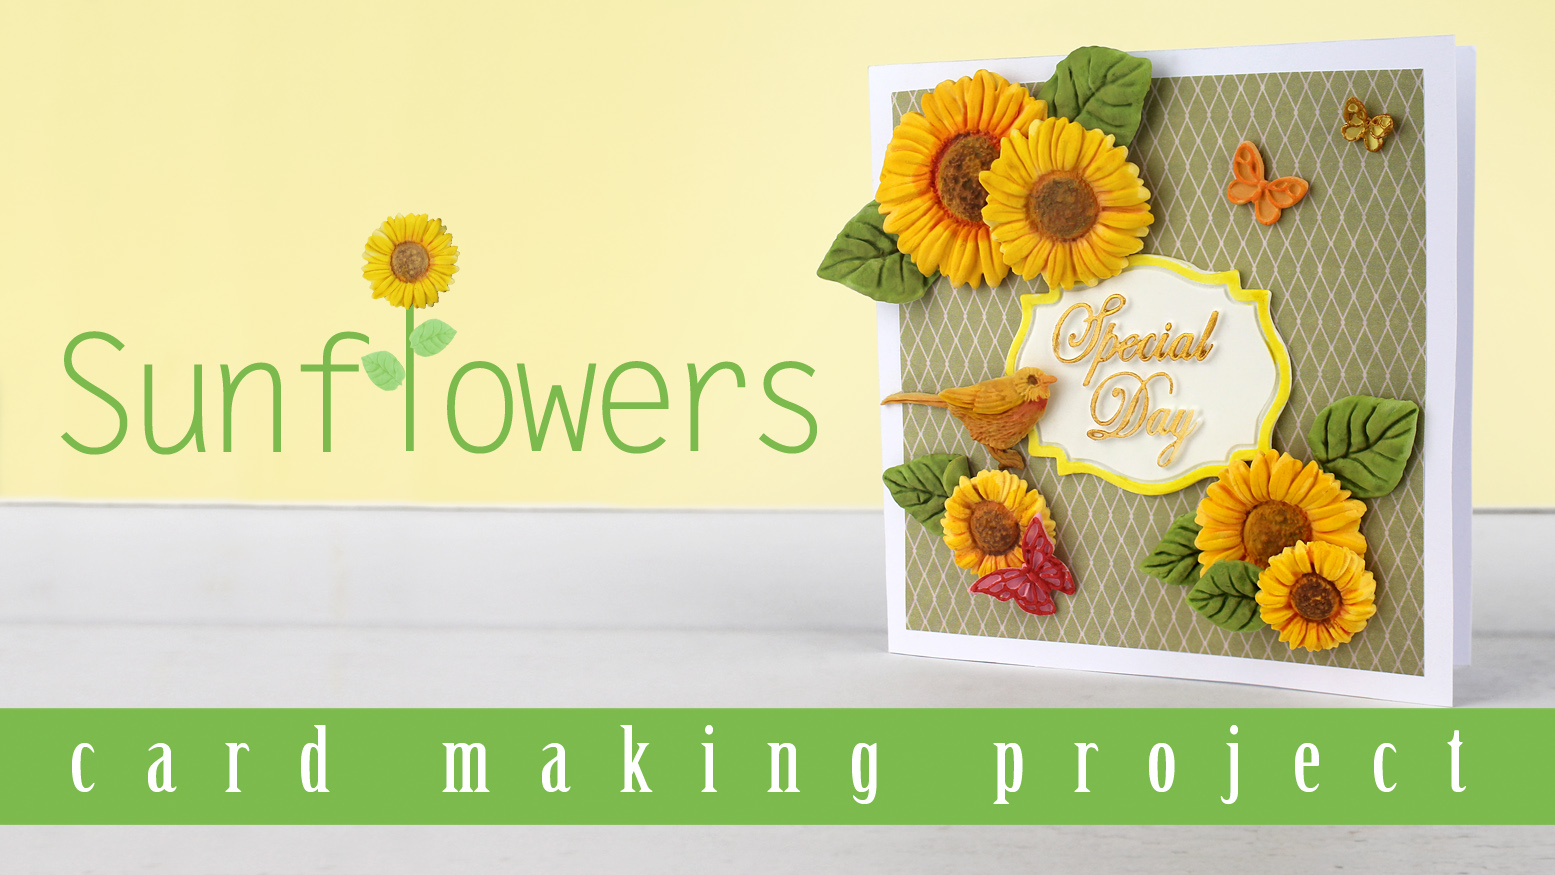 Sunflowers Card Making Project Video